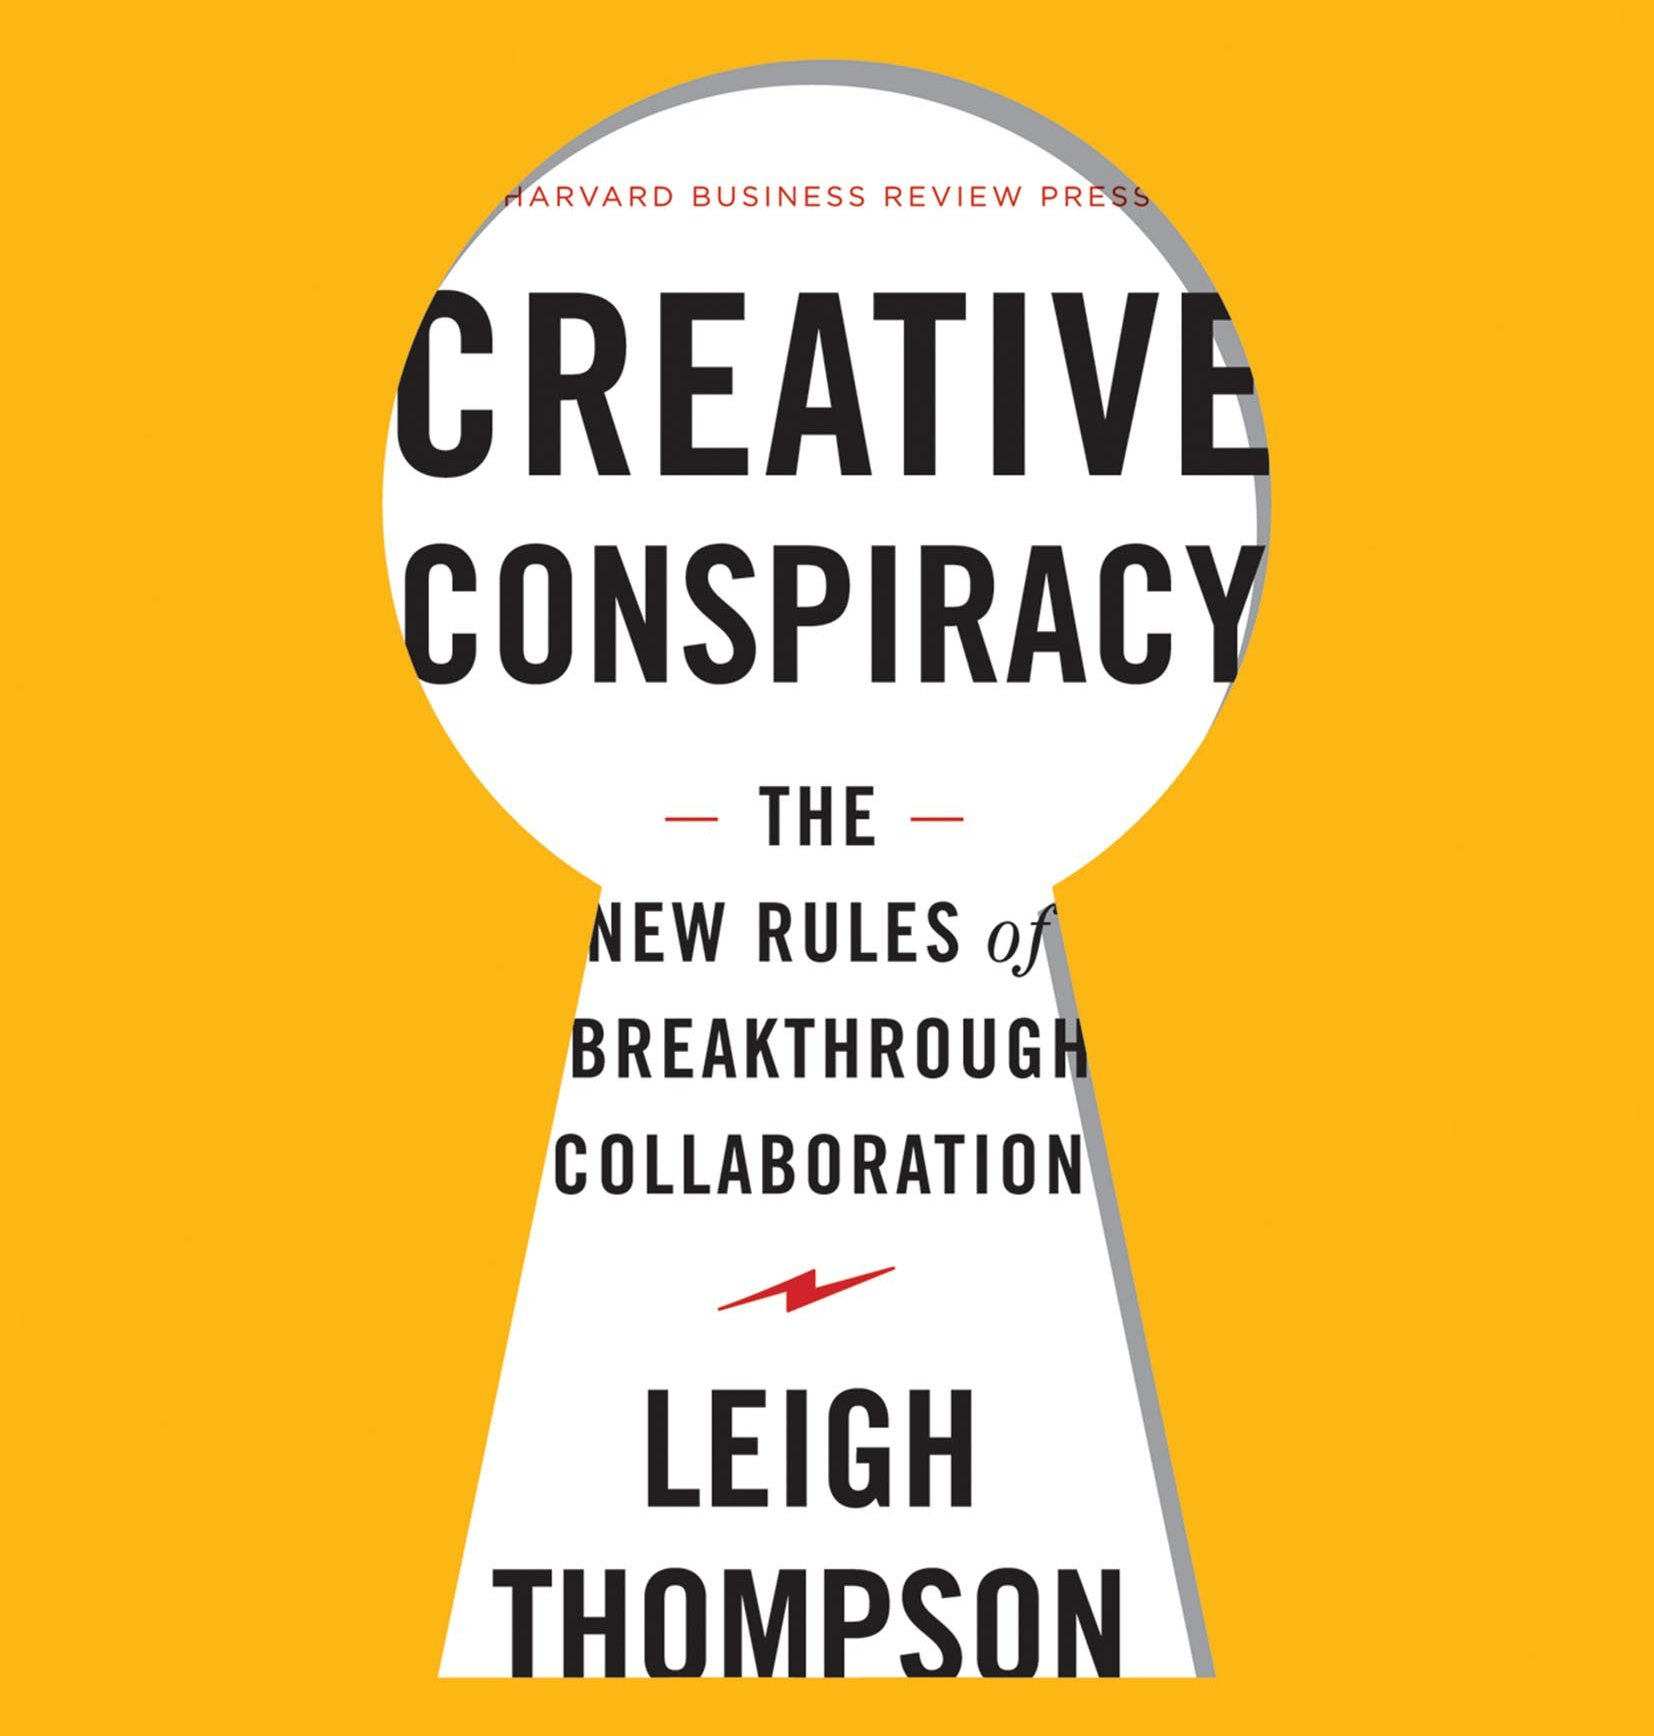 Creative Conspiracy: The New Rules of Breakthrough Collaboration - Leigh Thompson - reviews, quotes, summary